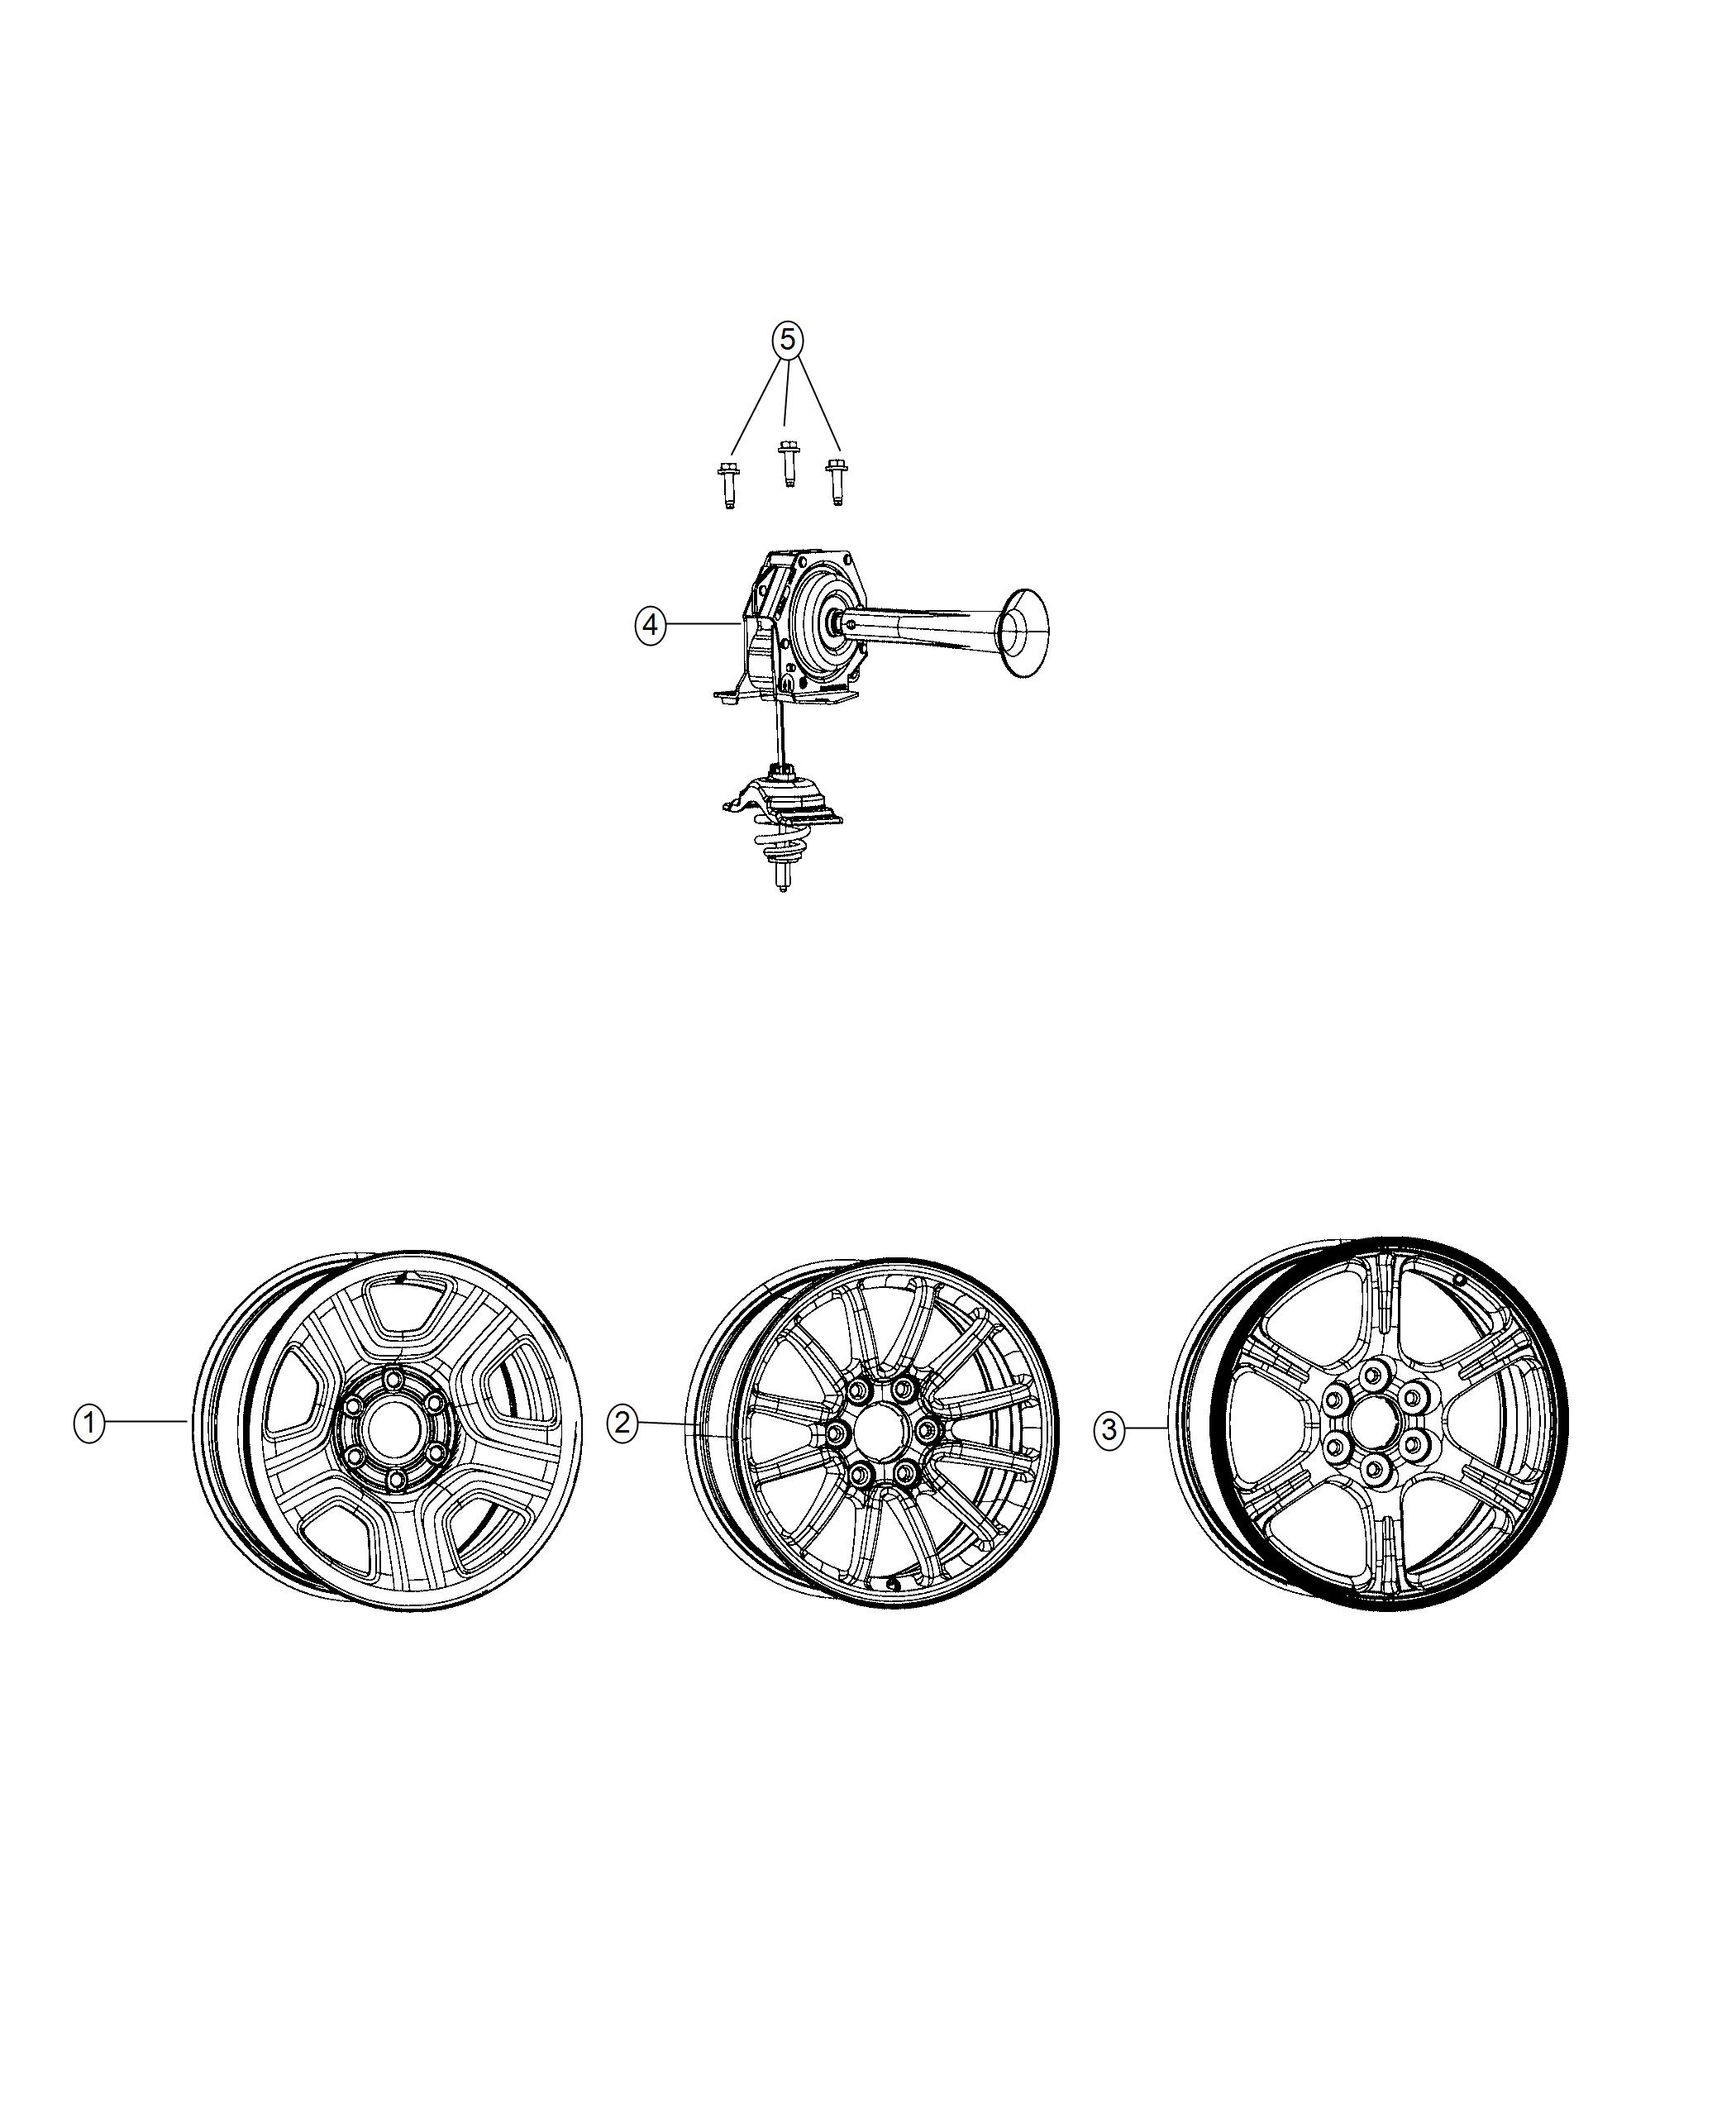 2019 Ram 1500 Wheel  Spare  Wheels